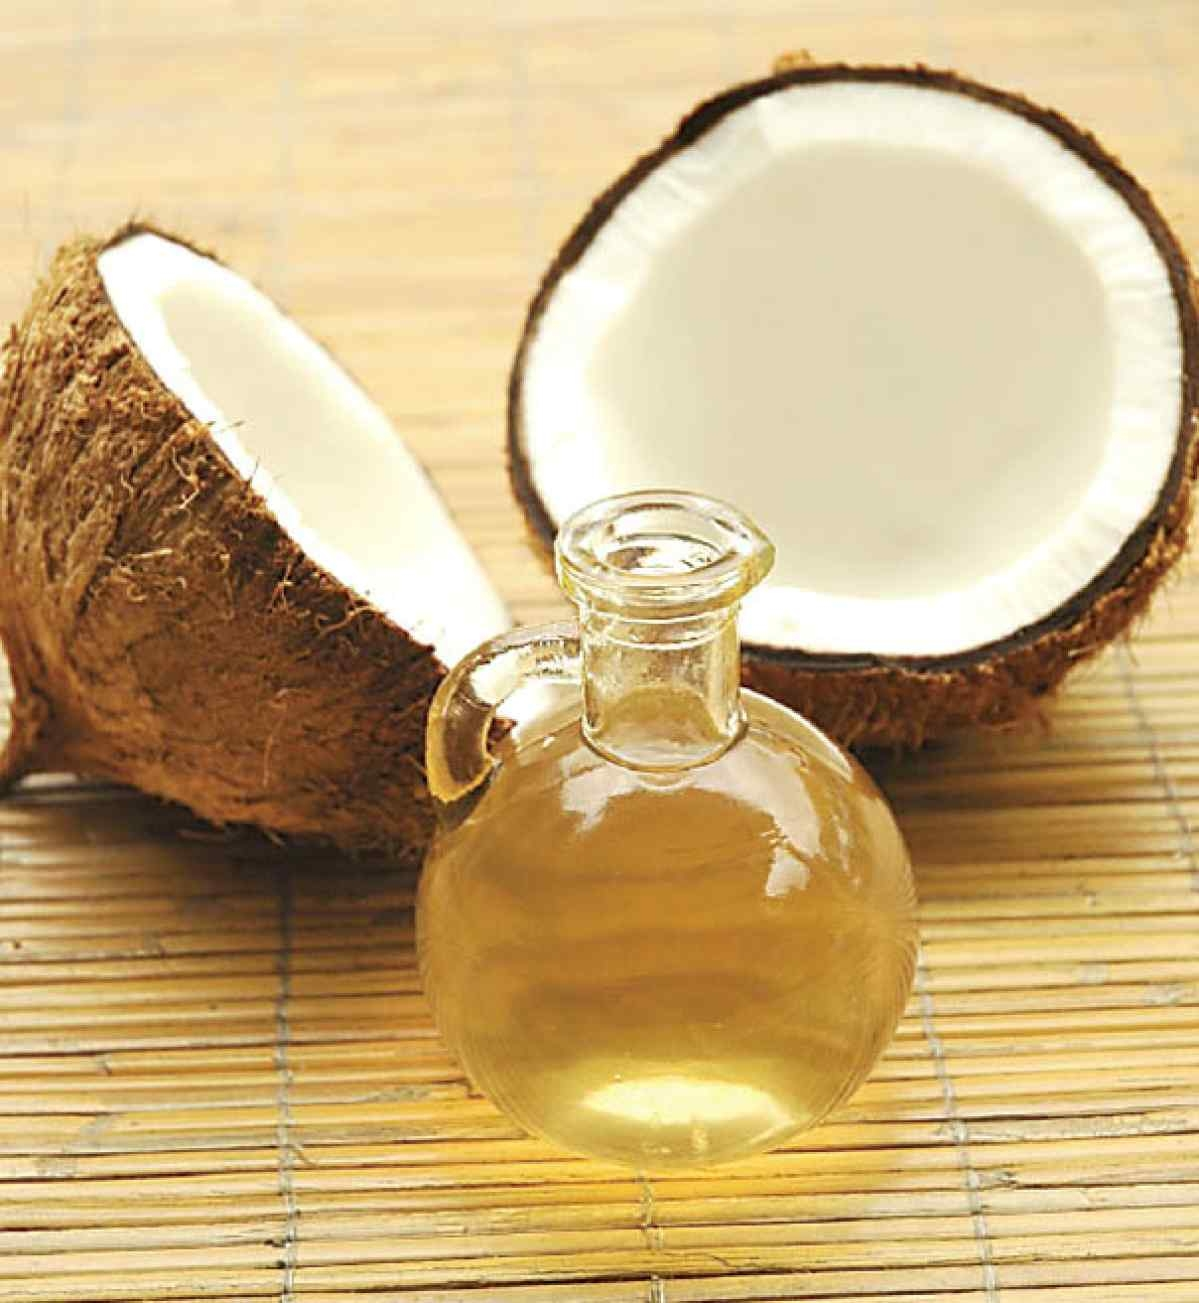 Harvard professor calls coconut oil 'pure poison'; Ayurveda may differ